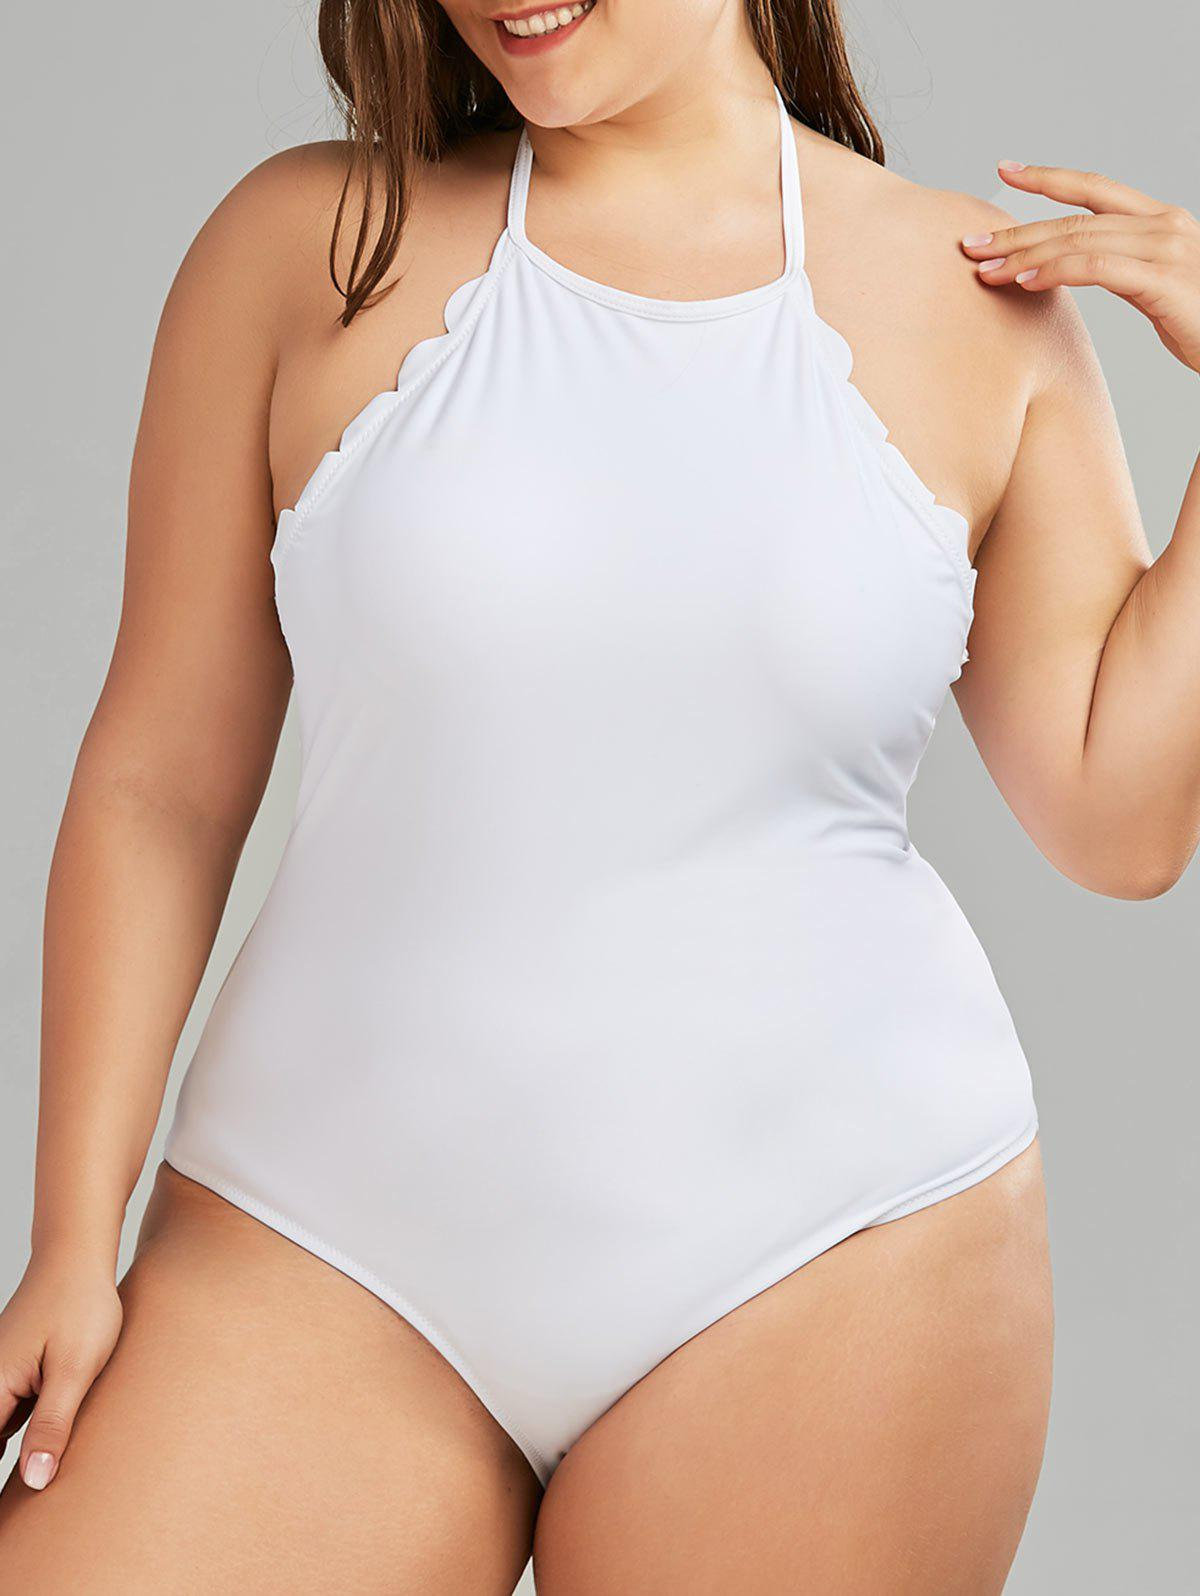 2f52d73d9c 2019 One Piece Plus Size Scalloped Backless Swimsuit